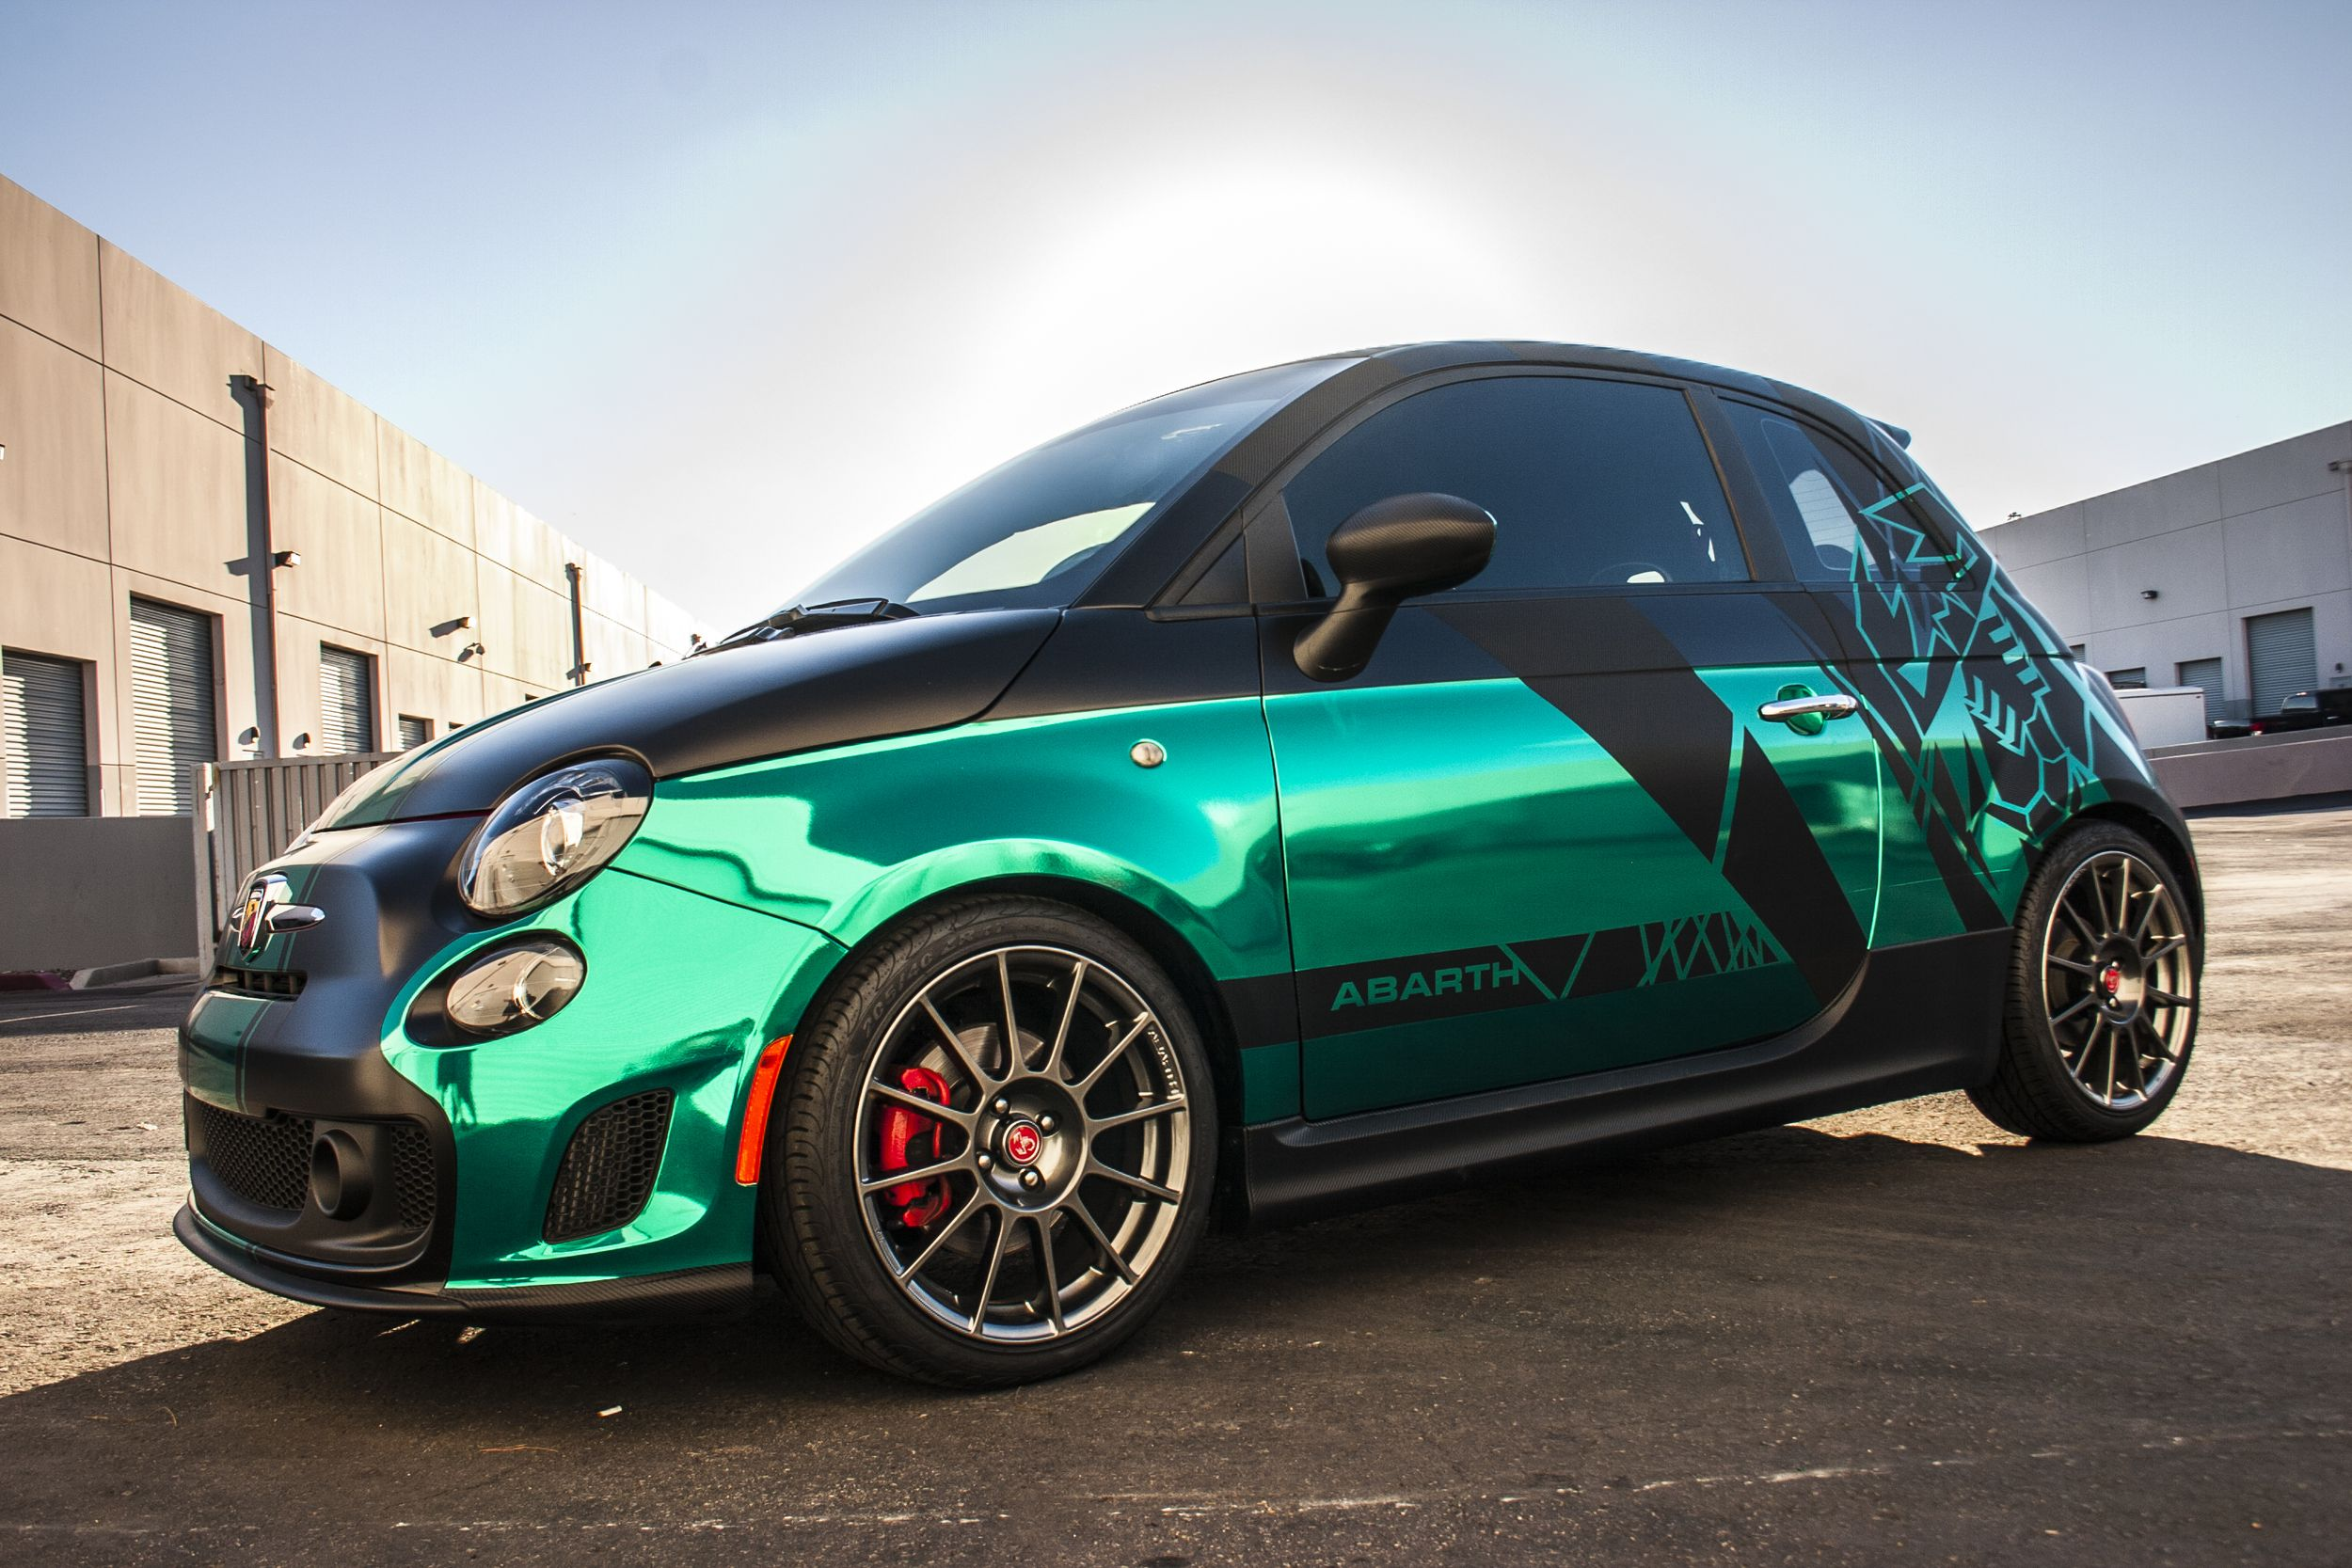 Pin By Nick C On Fiat 500e Let There Be Light In 2021 Fiat Chrome Cars Fiat Abarth [ 1667 x 2500 Pixel ]